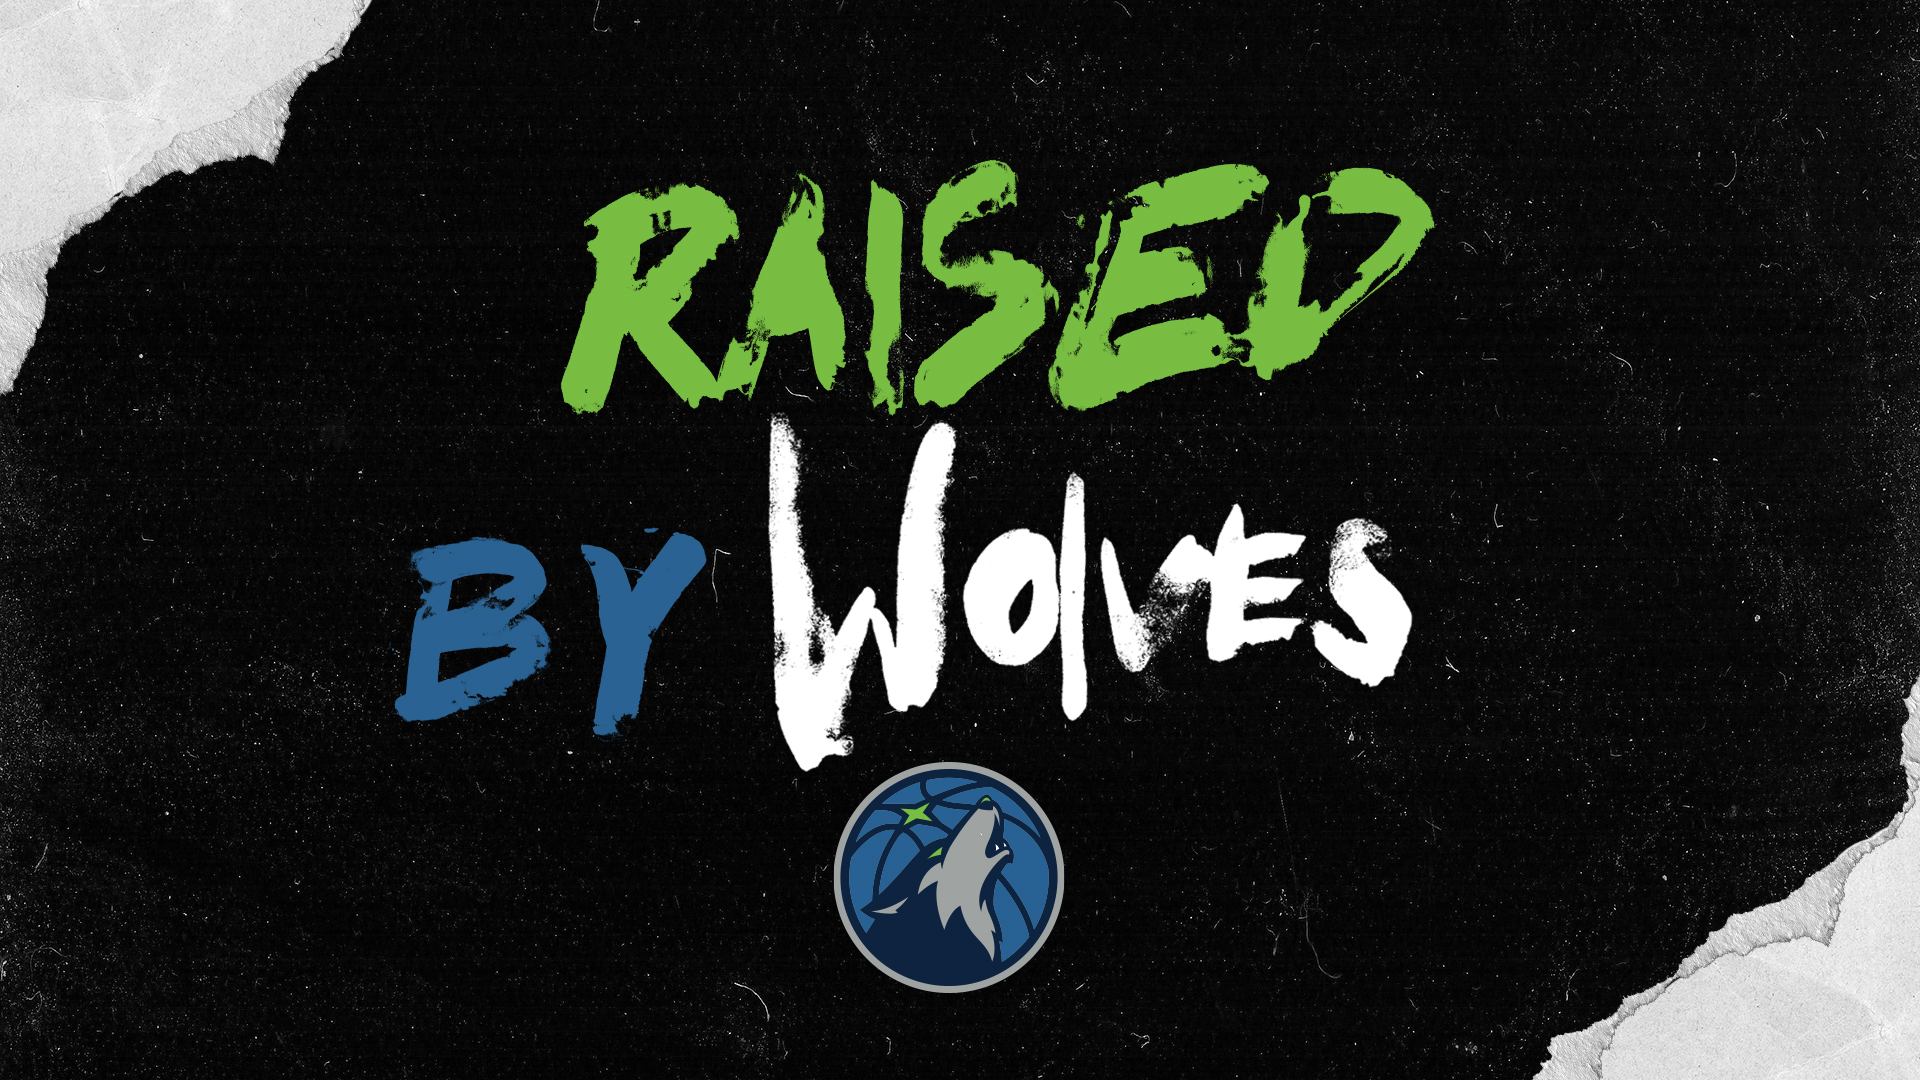 raised by wolves wallpaper 4